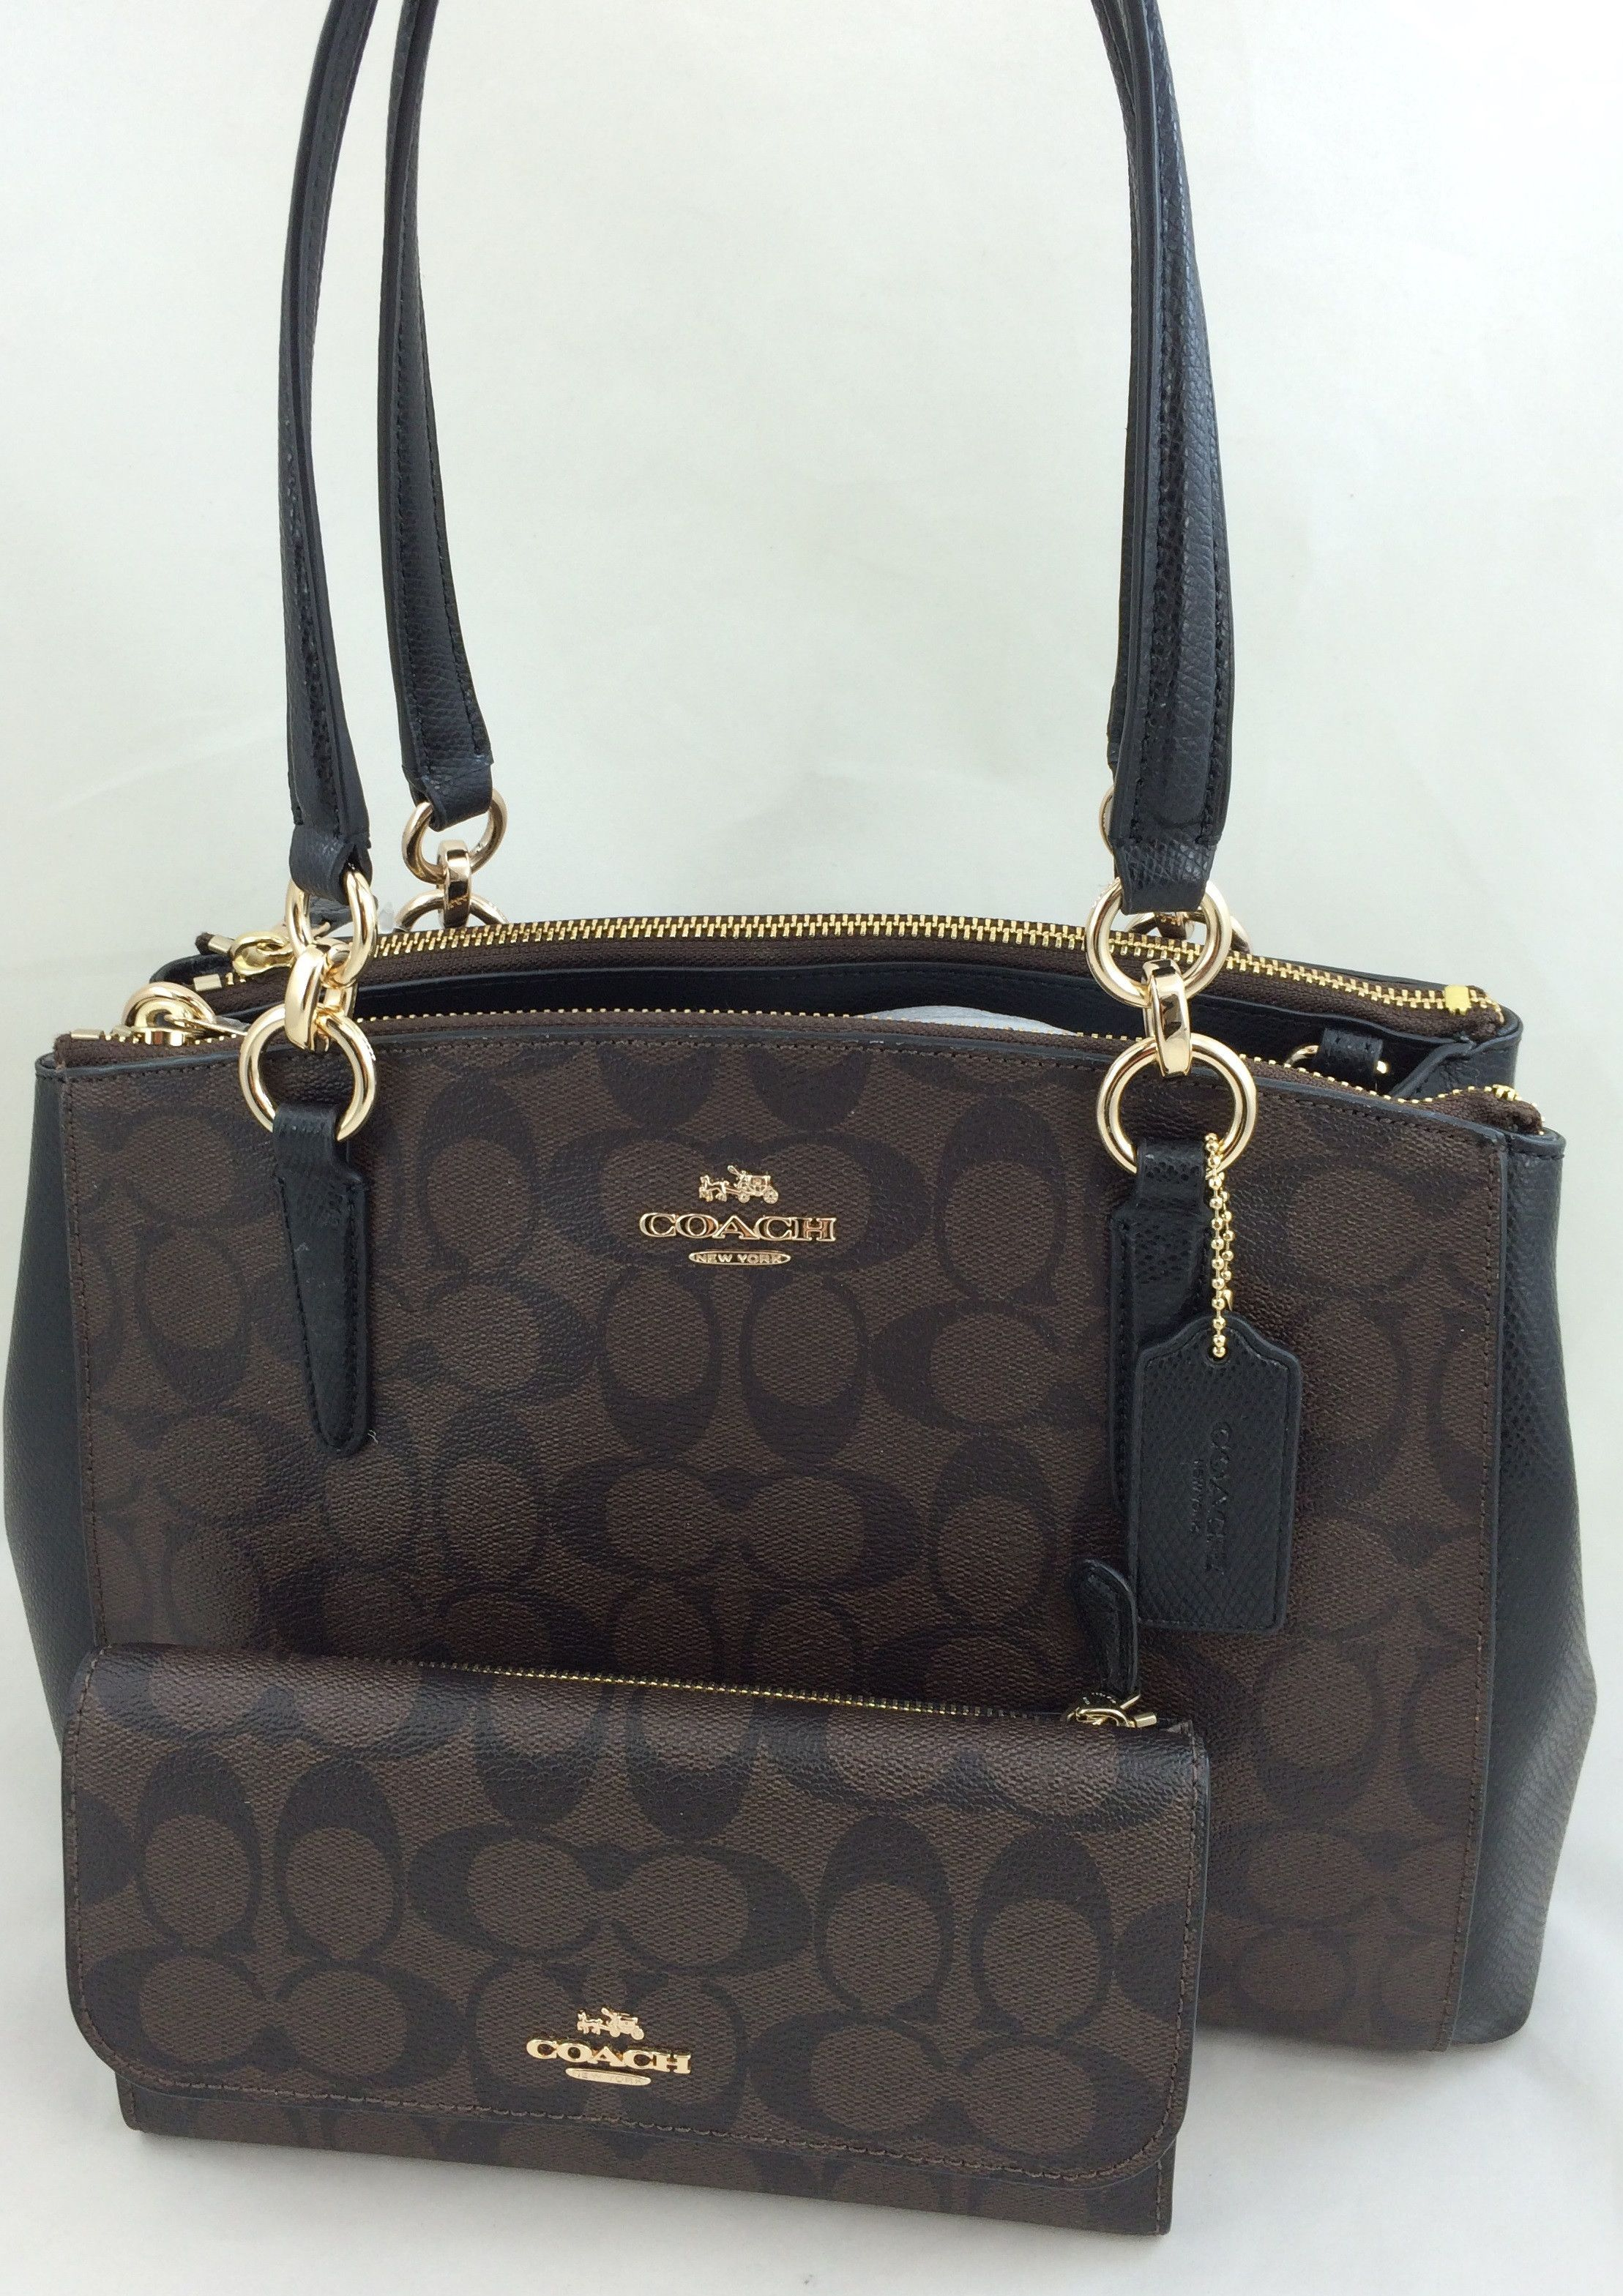 32accdf5ba3c store dark brown small coach purse 64dba a981c  discount code for new  authentic coach f36619 small christie carryall satchel shoulder bag in  signature pvc